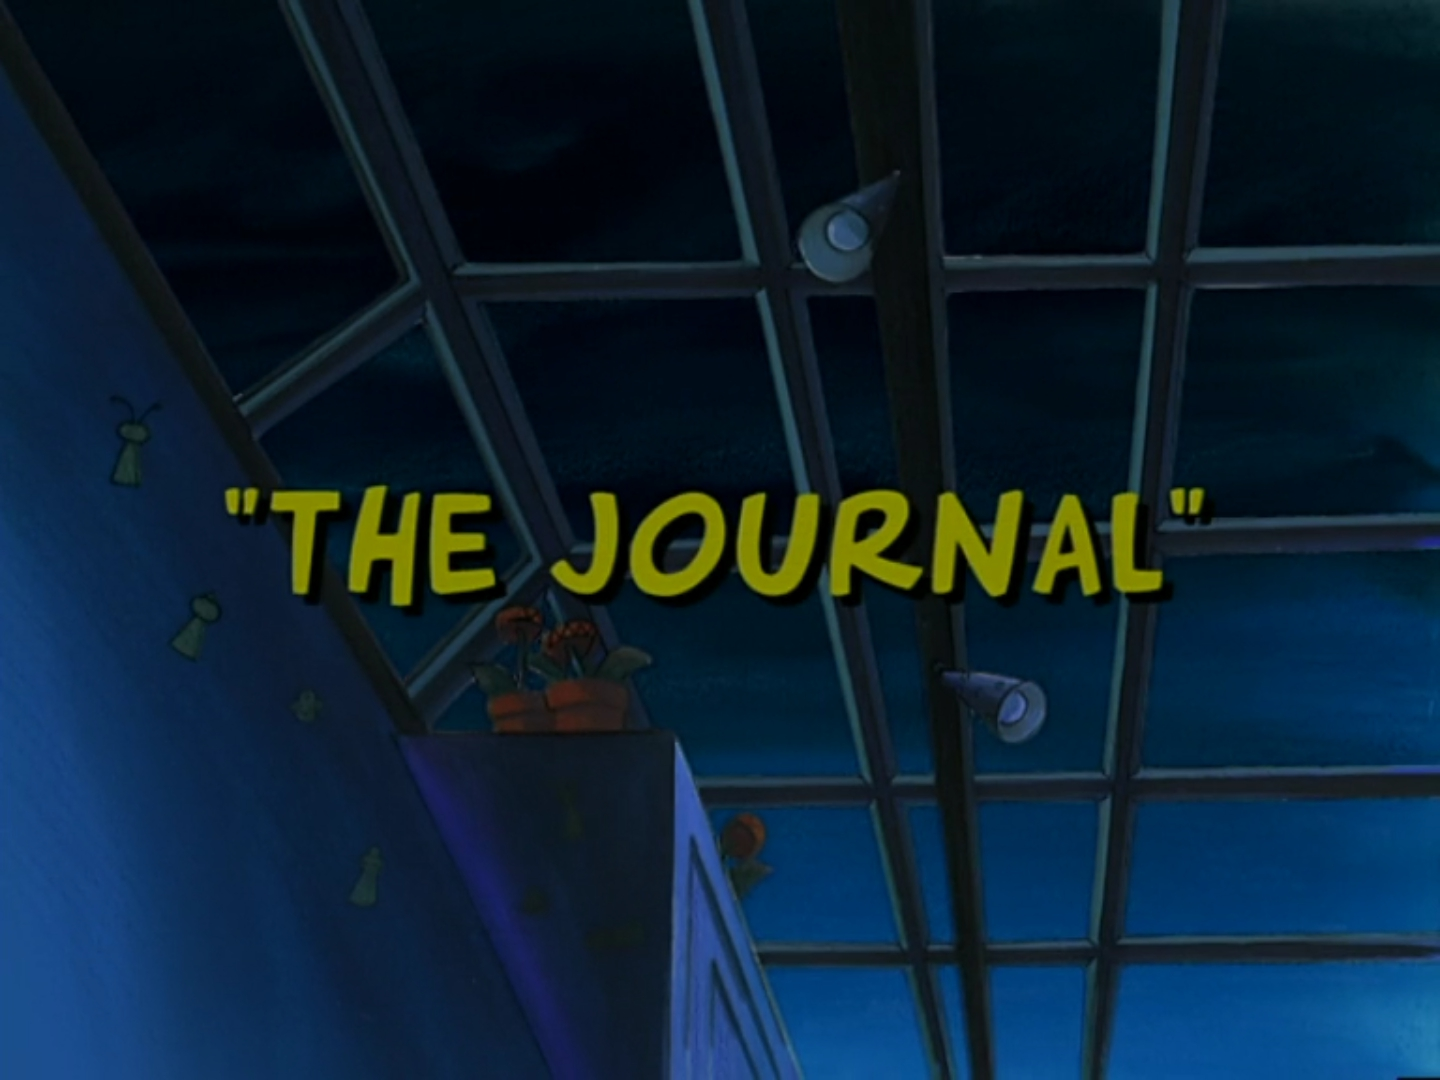 File:Title-TheJournal.jpg